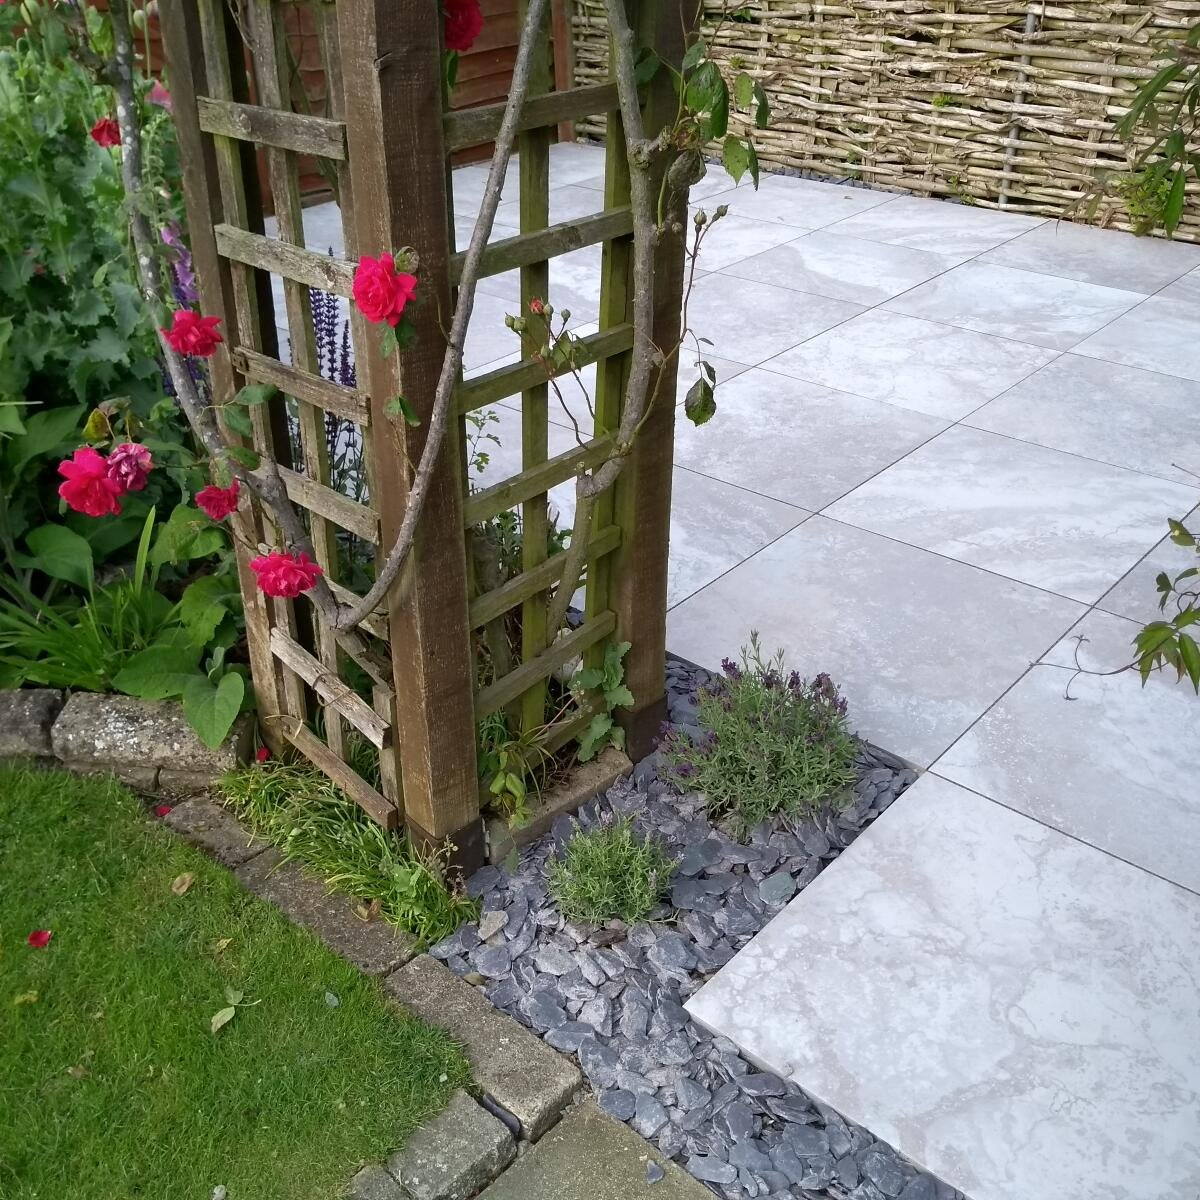 Green Garden Paving  5 star review on 15th June 2018